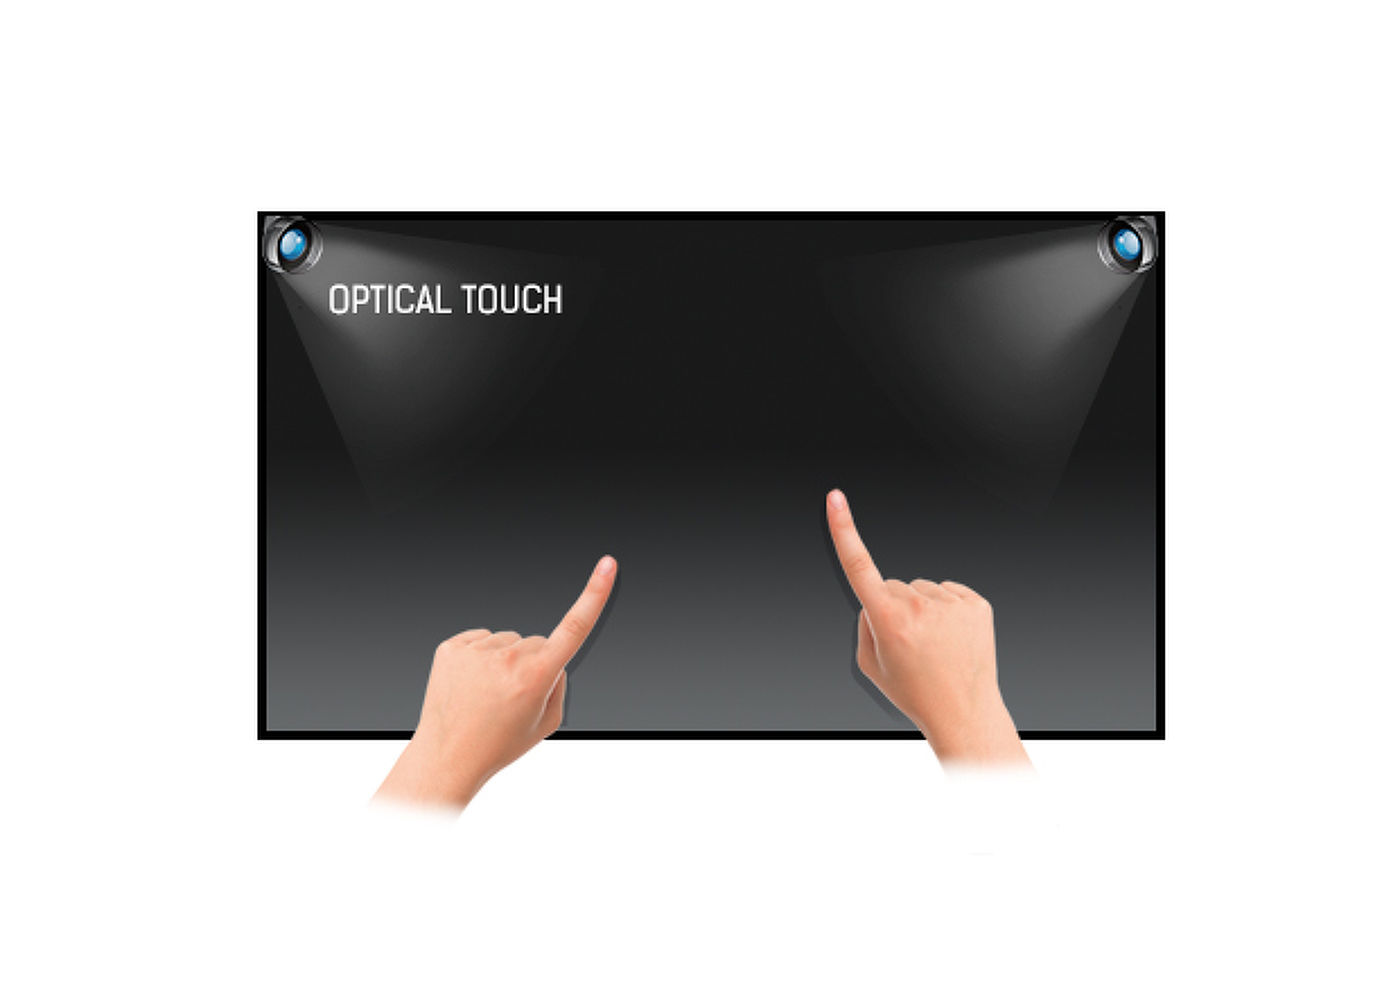 Touch technologie - Optical